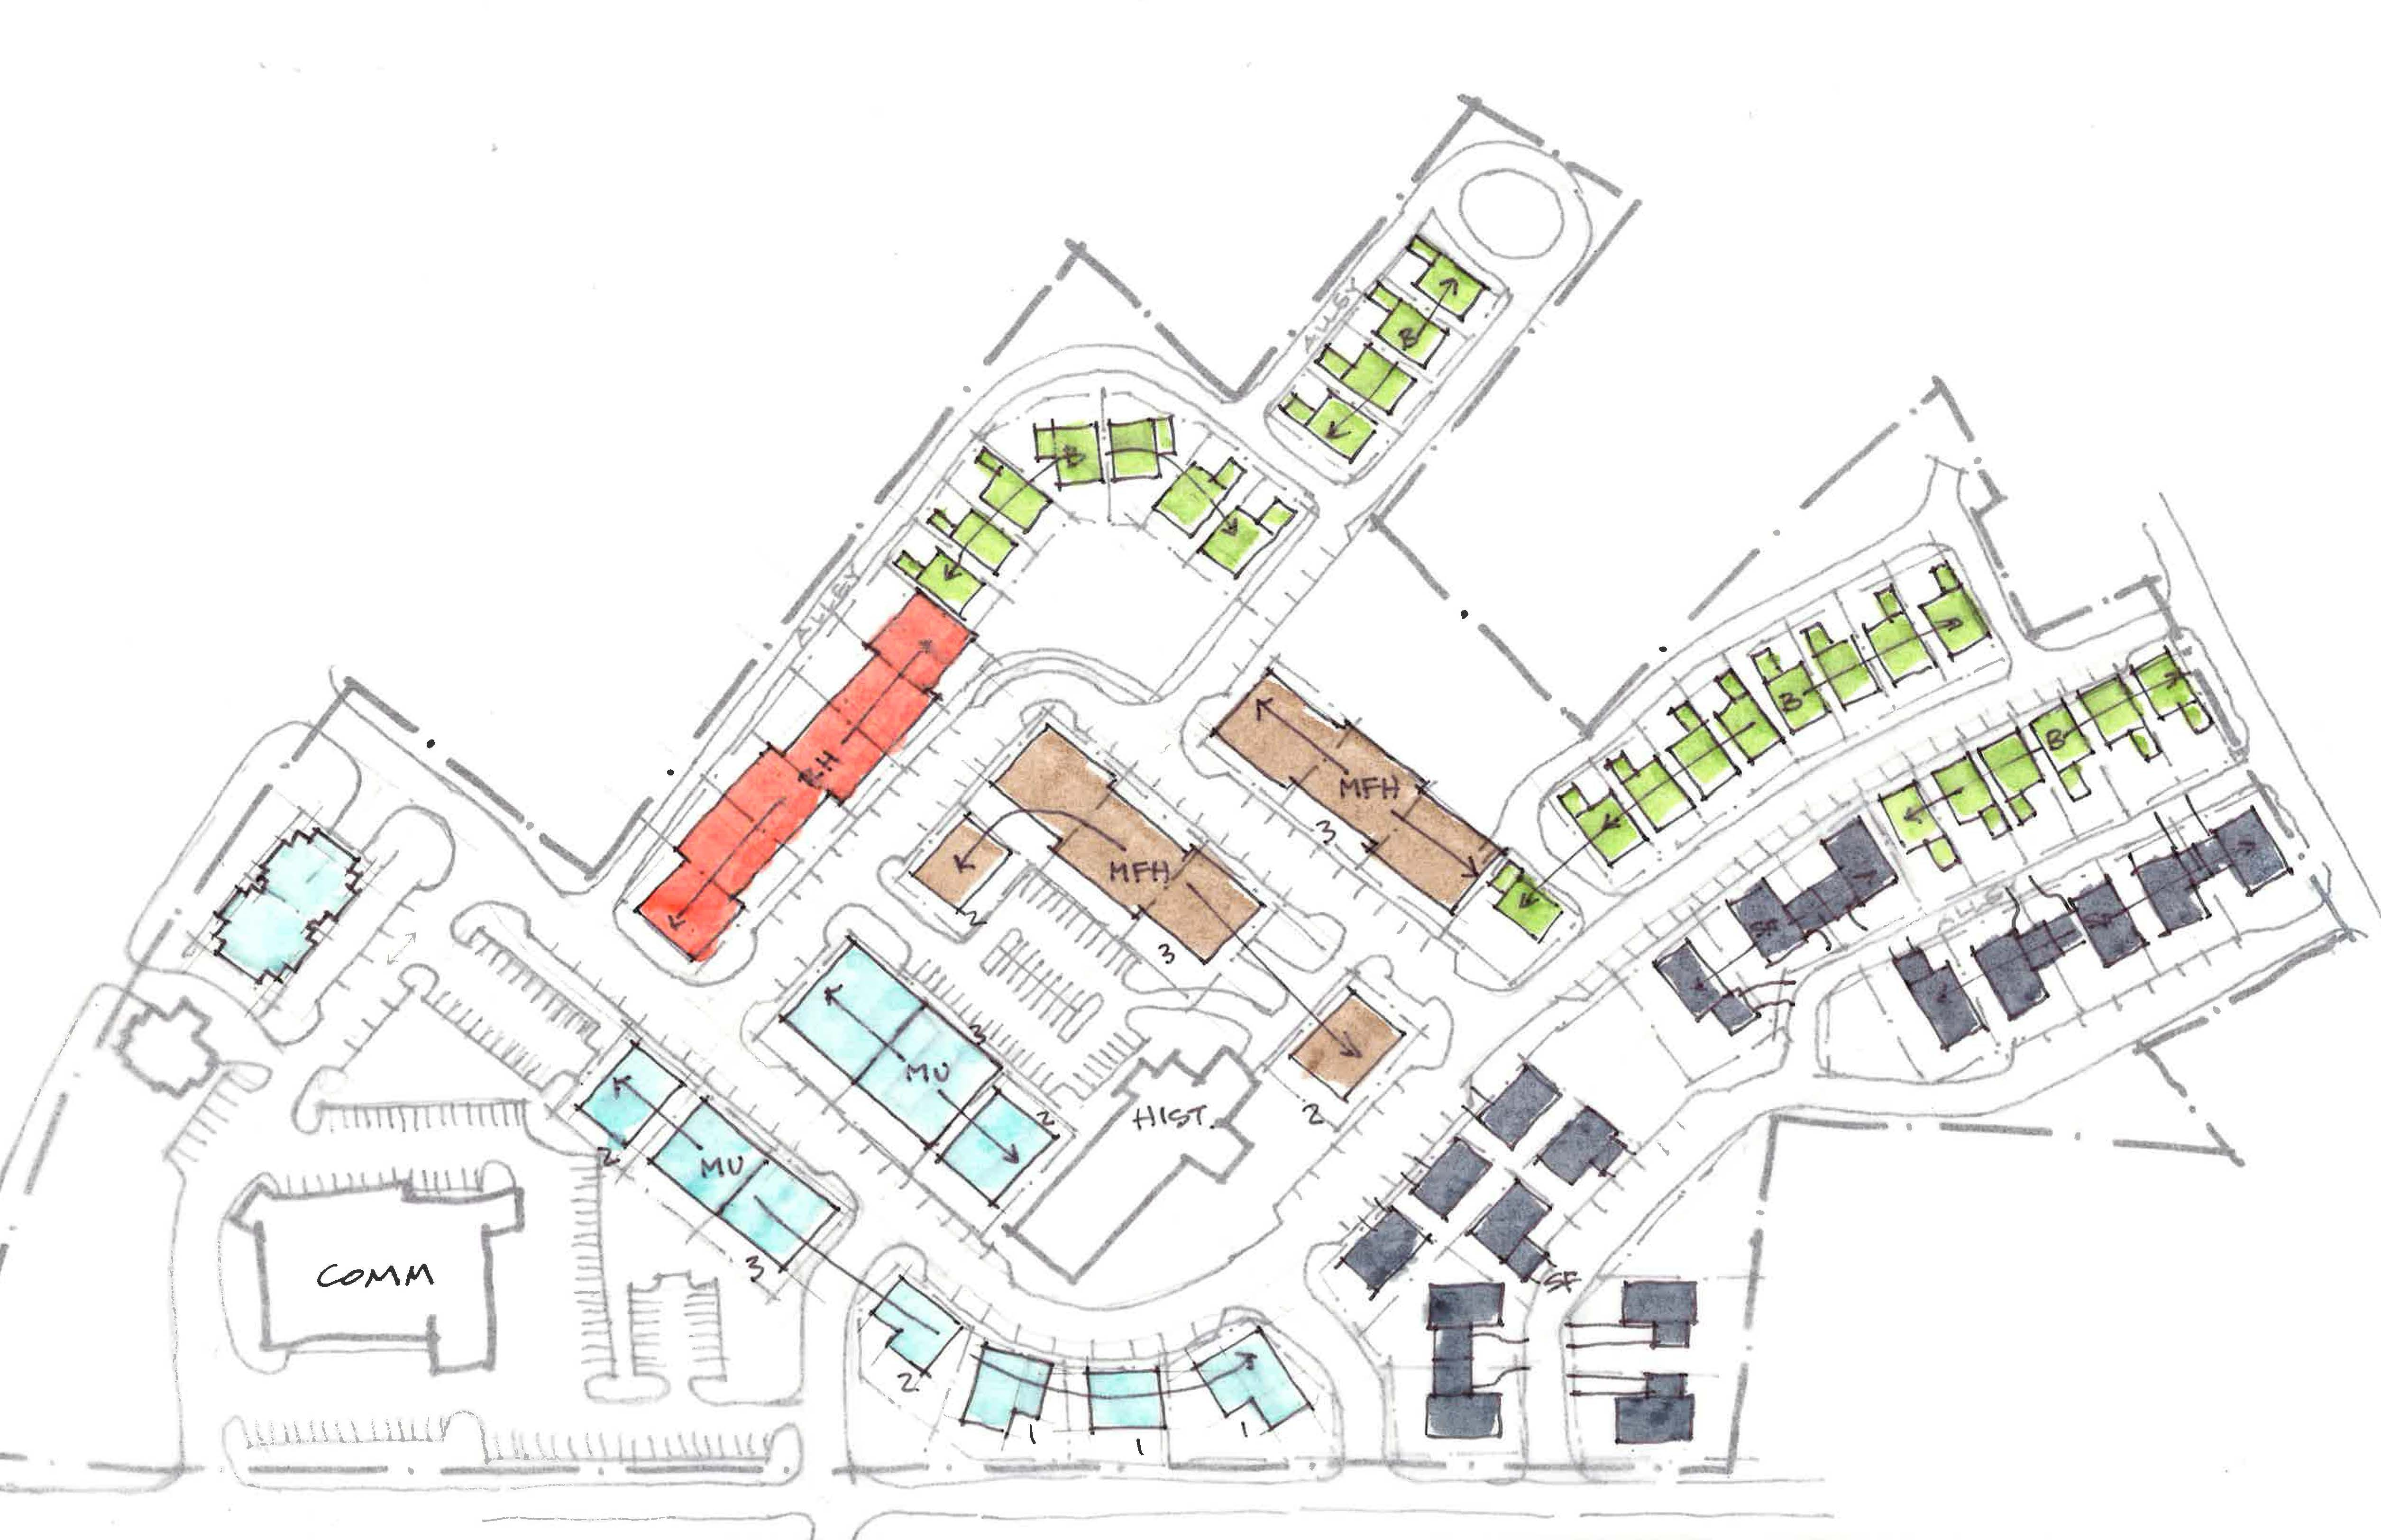 Street layout plan With Uses